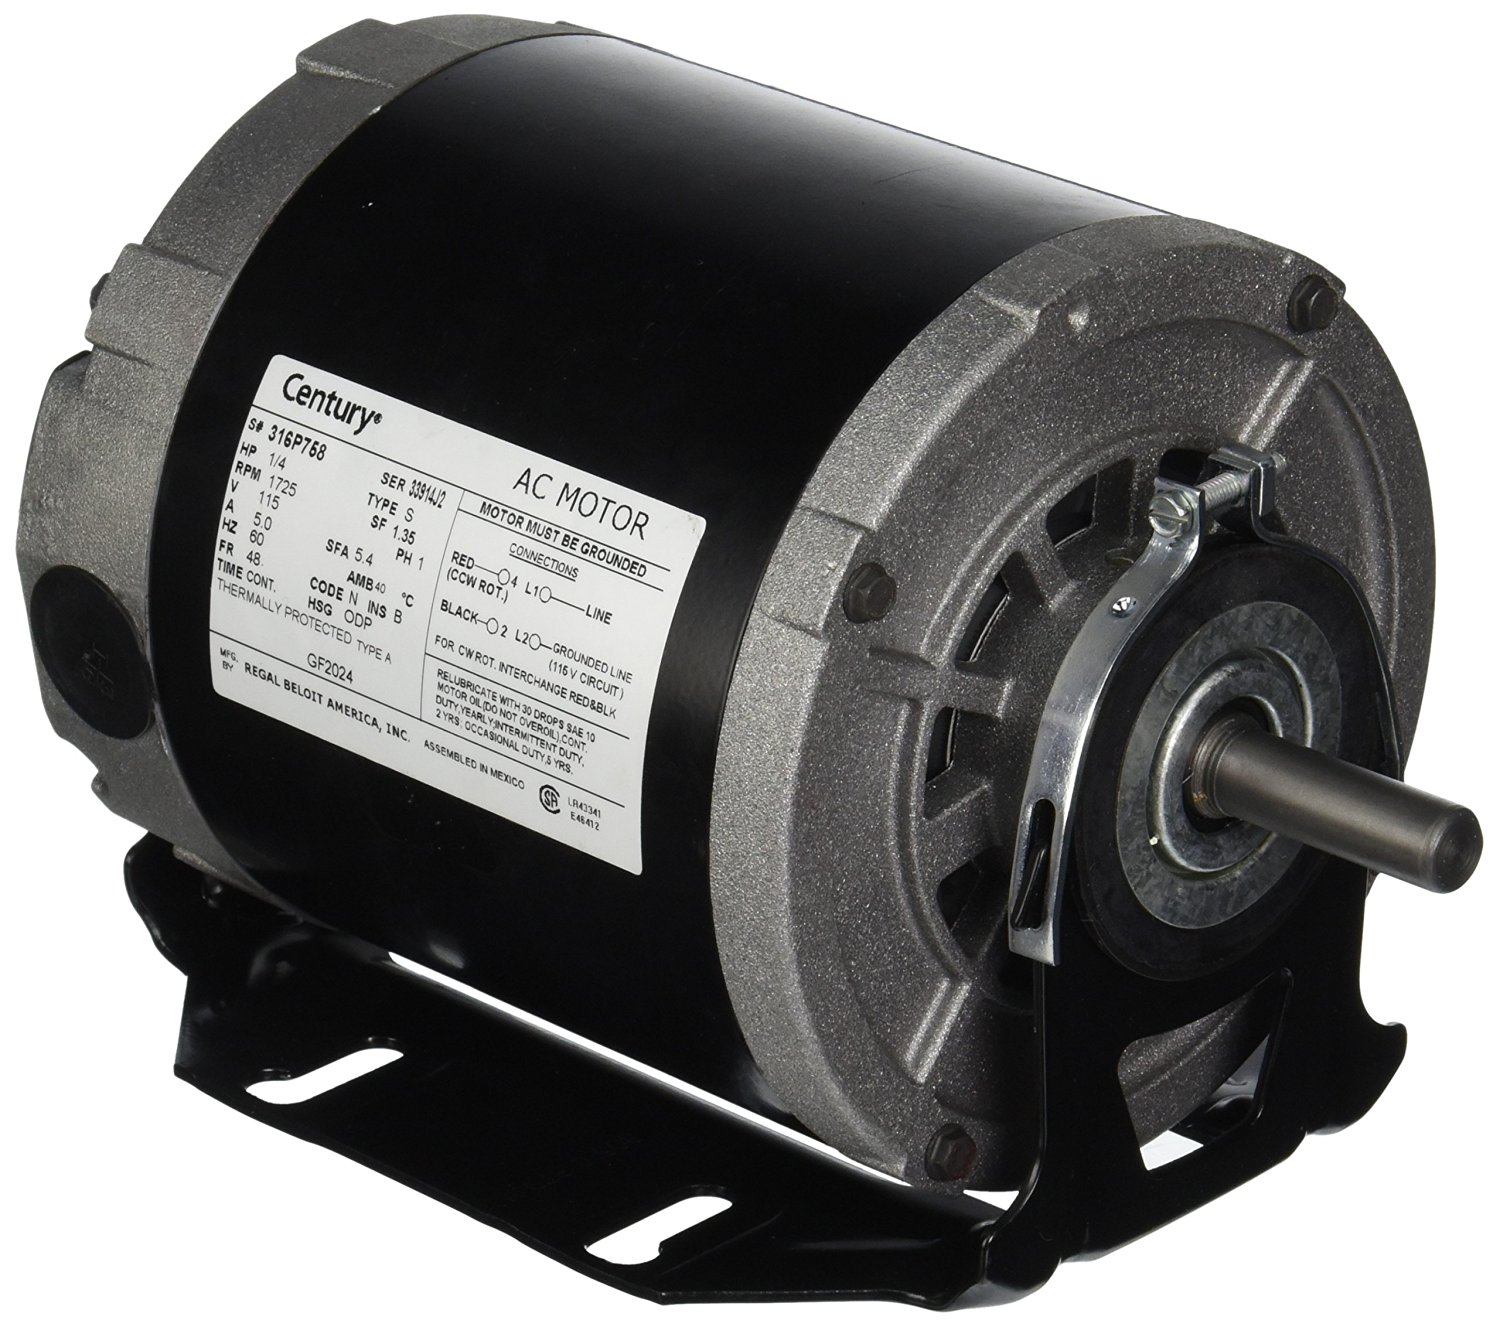 mtrgf2024 a o smith furnace blower motor 115 volts. Black Bedroom Furniture Sets. Home Design Ideas